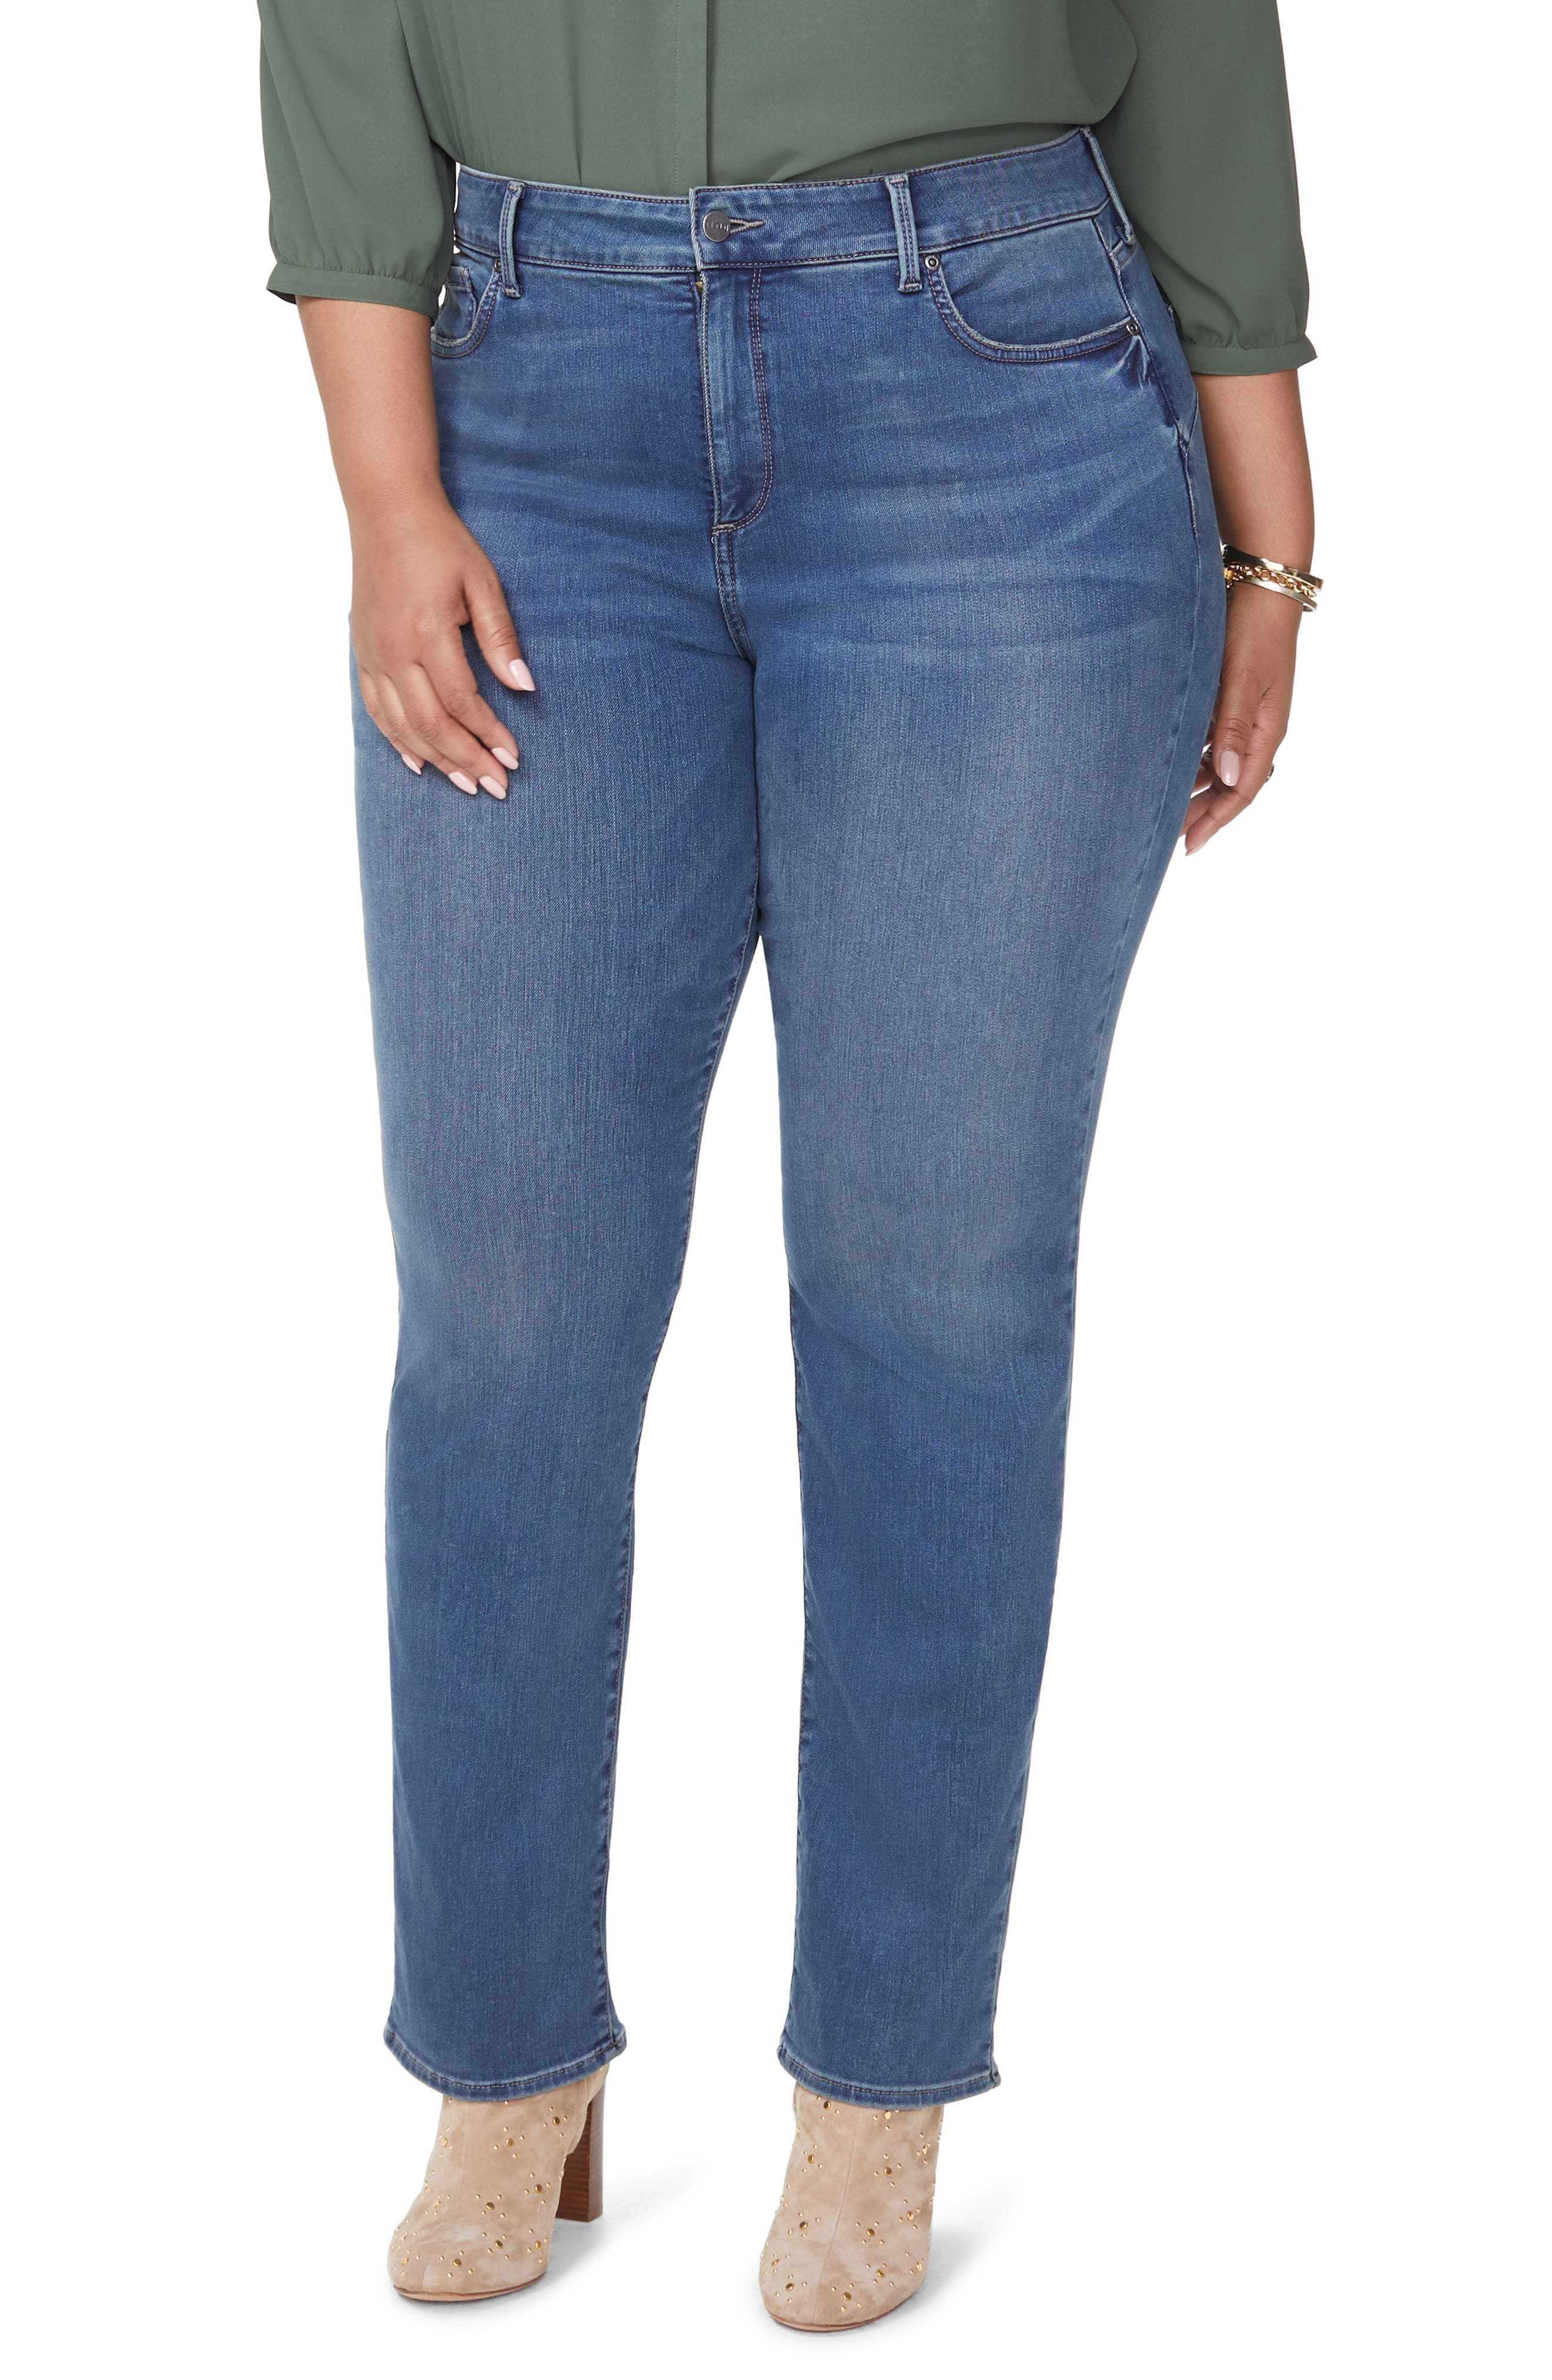 Marilyn Uplift Straight Leg Jeans,                             Main thumbnail 1, color,                             FERRIS